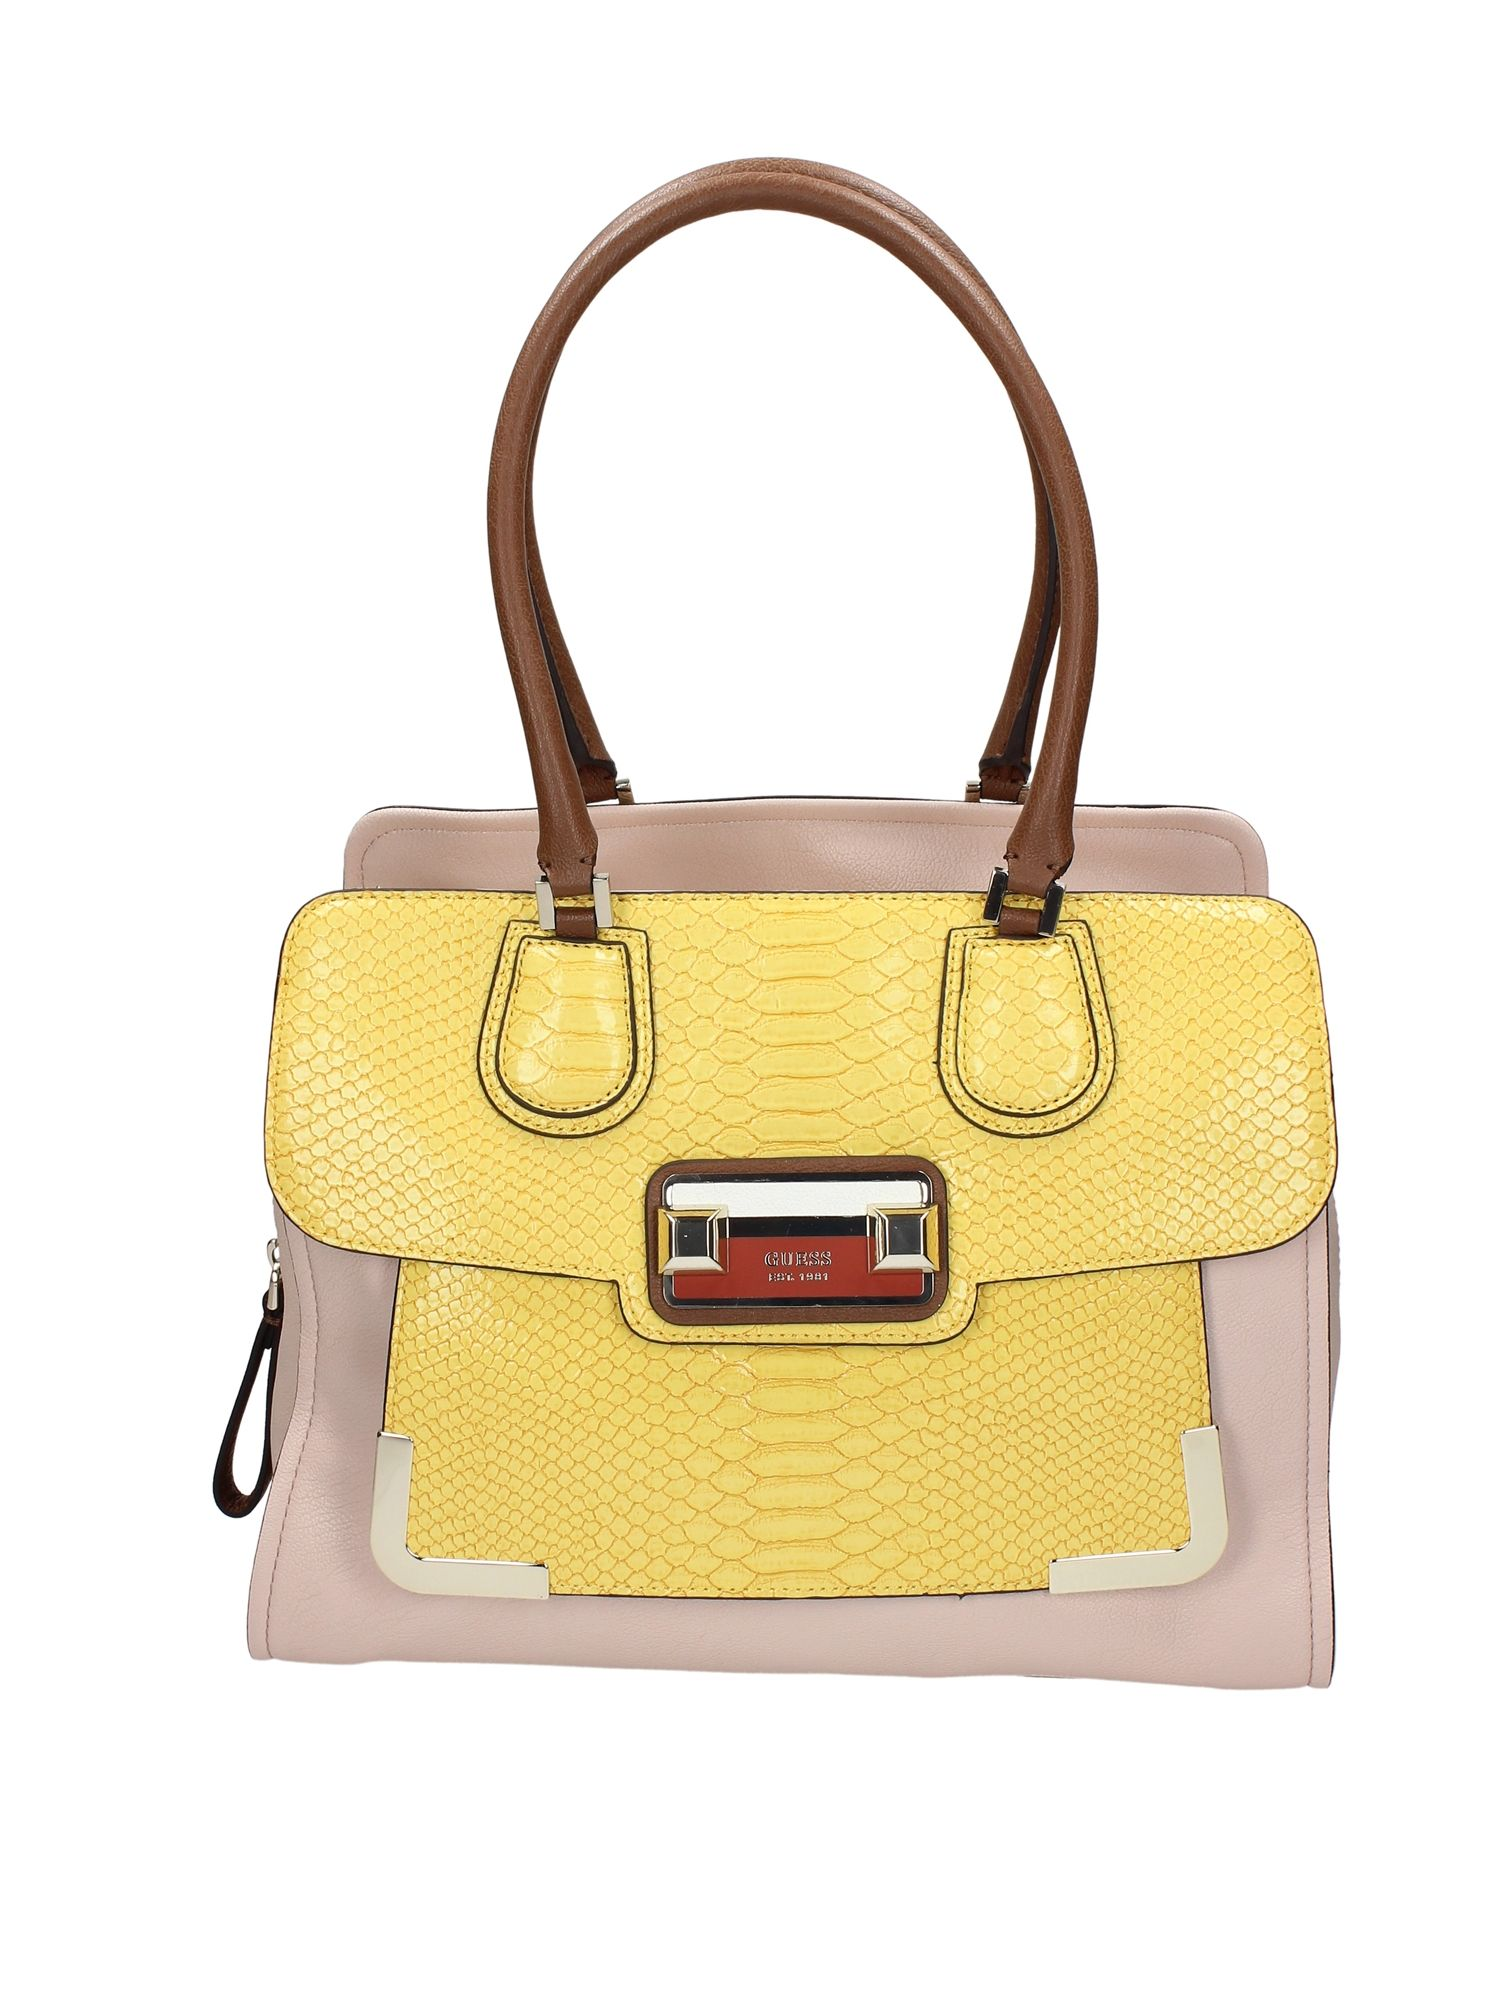 borse guess primavera estate 2015 a bauletto